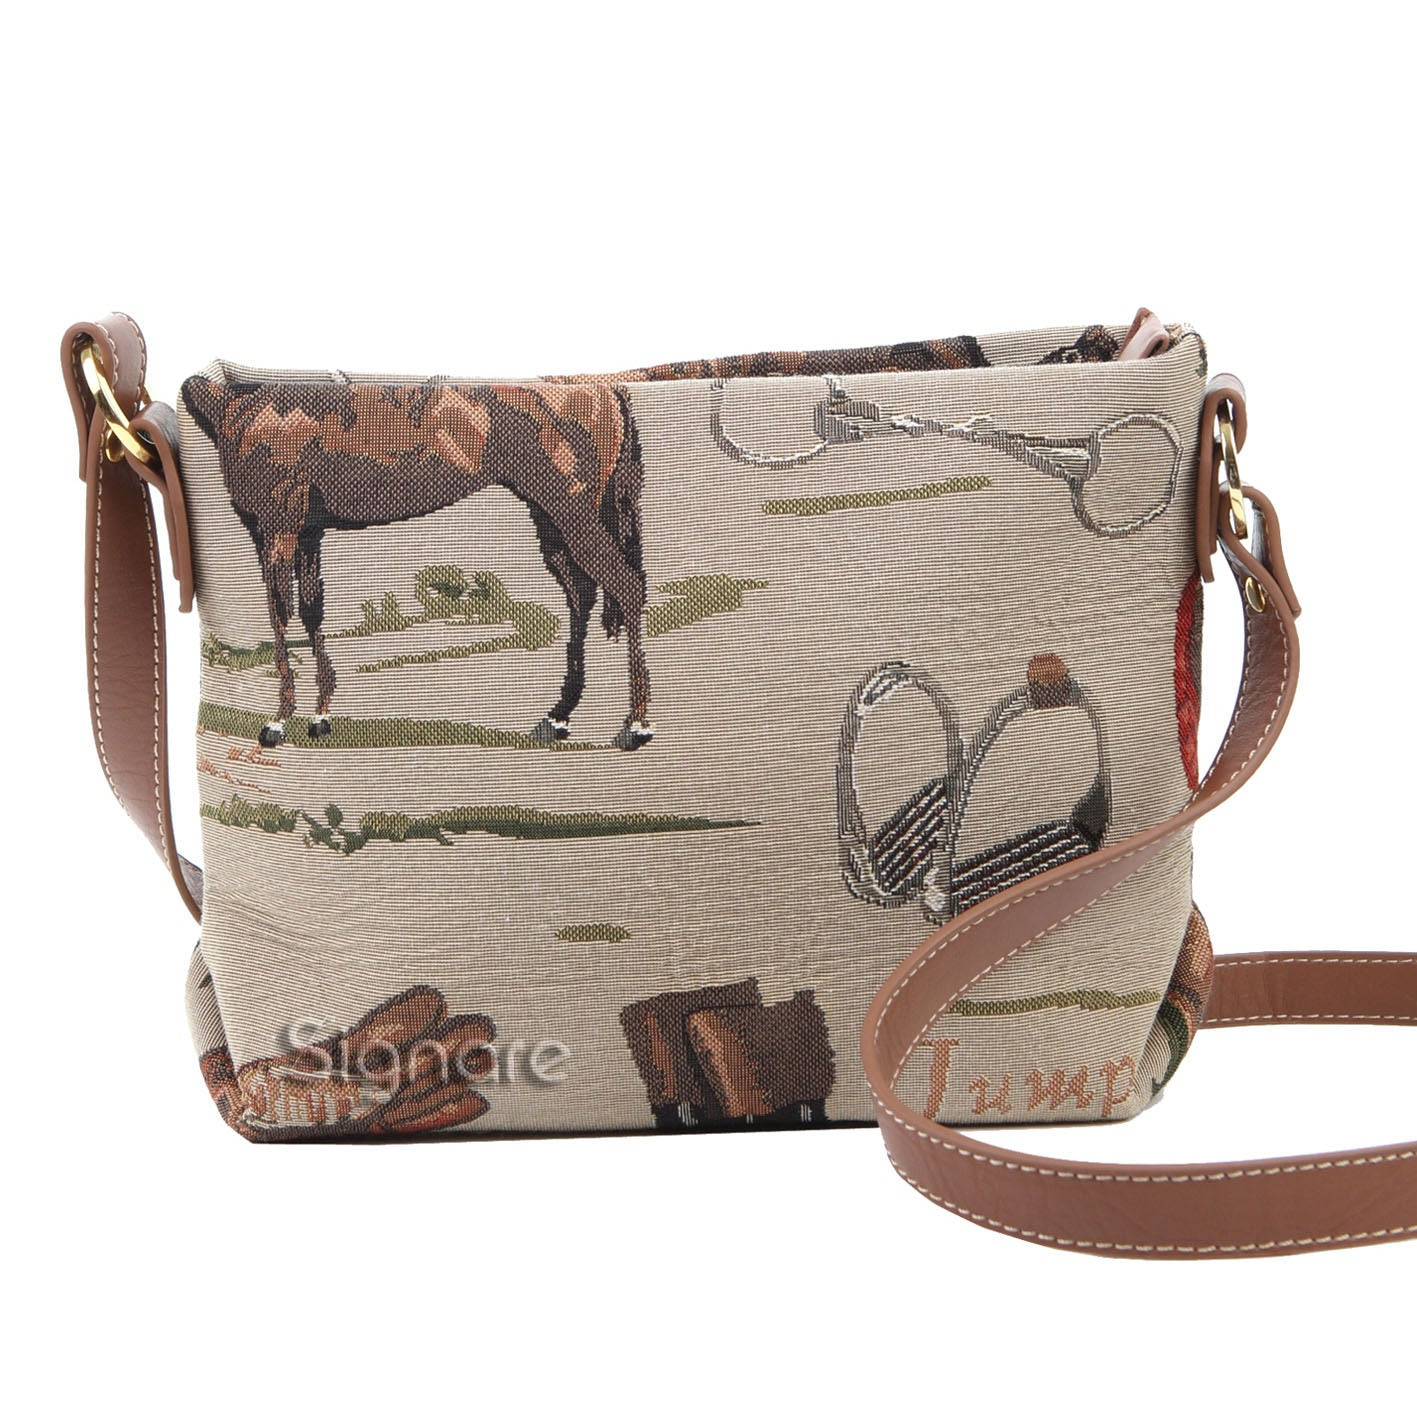 XB02-HOR | HORSE CROSS BODY BAG PURSE HANDBAG - www.signareusa.com